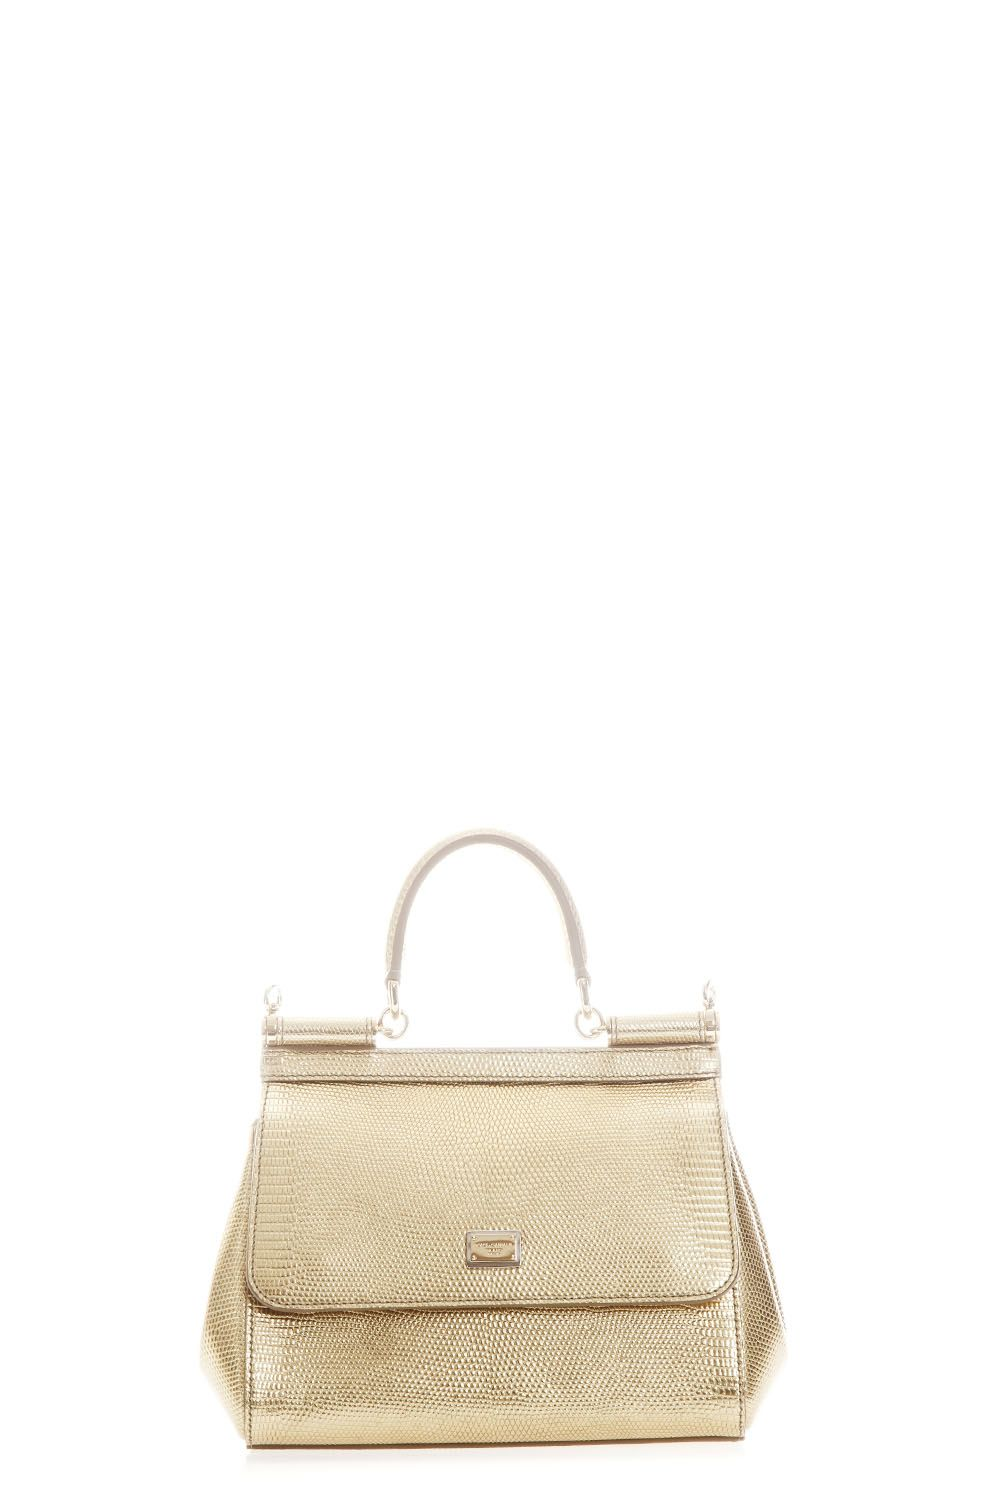 Dolce   Gabbana Small Sicily Dauphine Leather Bag In Gold   ModeSens ce390504f6